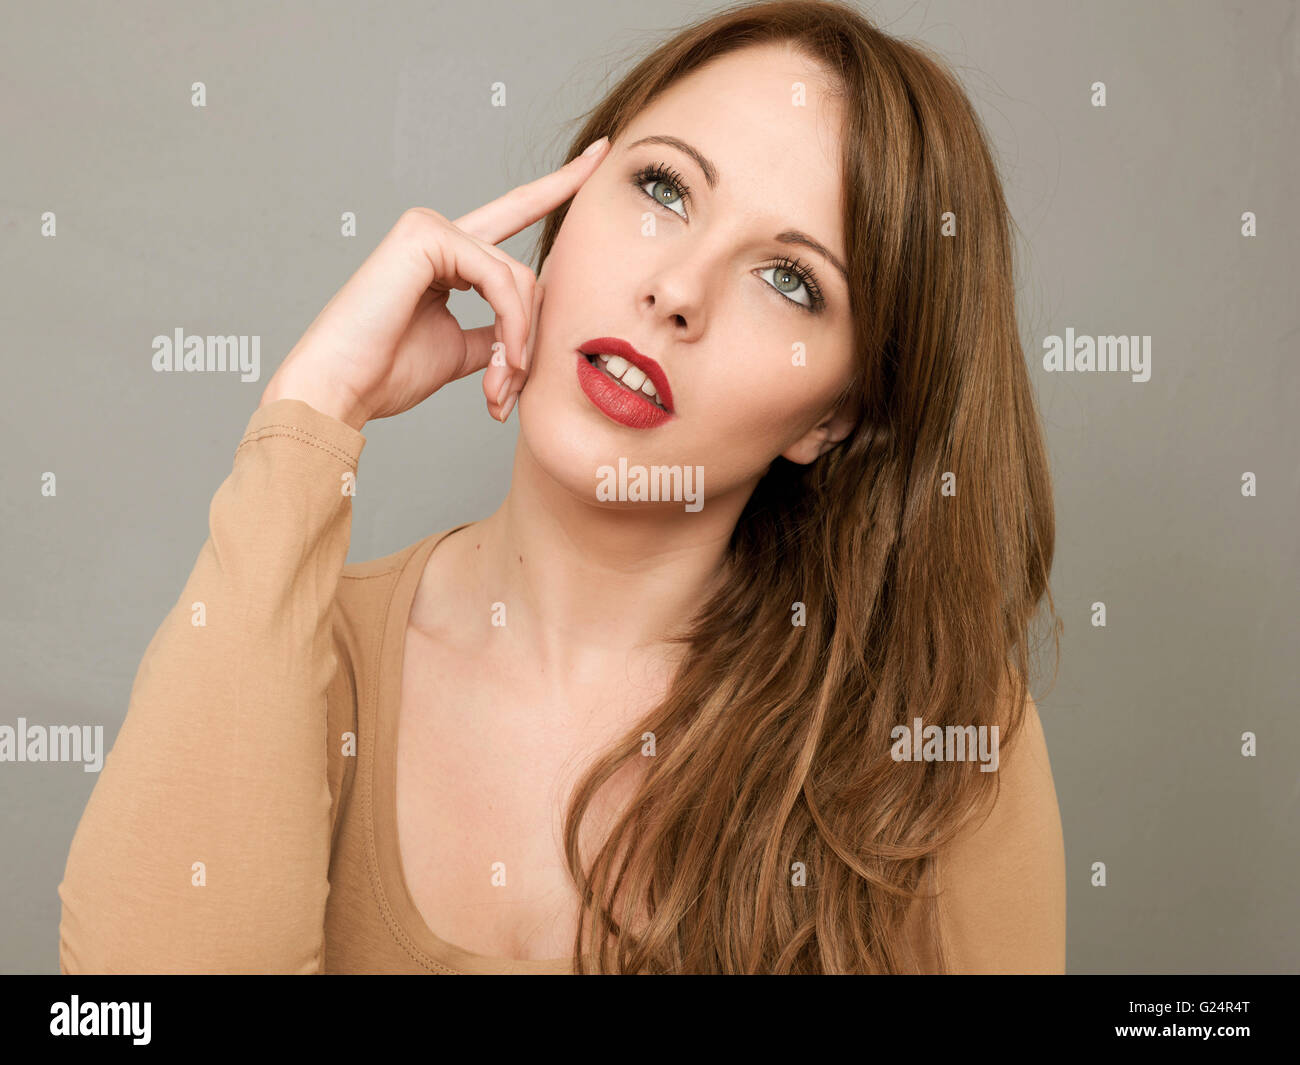 Portrait of a Woman Considering Choices or Options in a Thoughtful Pose Looking Up - Stock Image